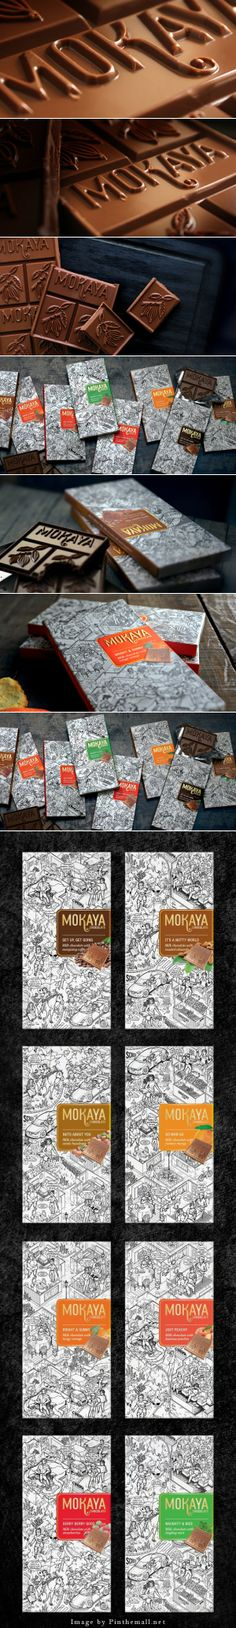 Mokaya Chocolates Agency: Diana Design Designer: Diana Bharucha Illustration - Denver Kotian Type of work: Commercial Work Client: Shalimar Teahouse, Malaysia Country: India